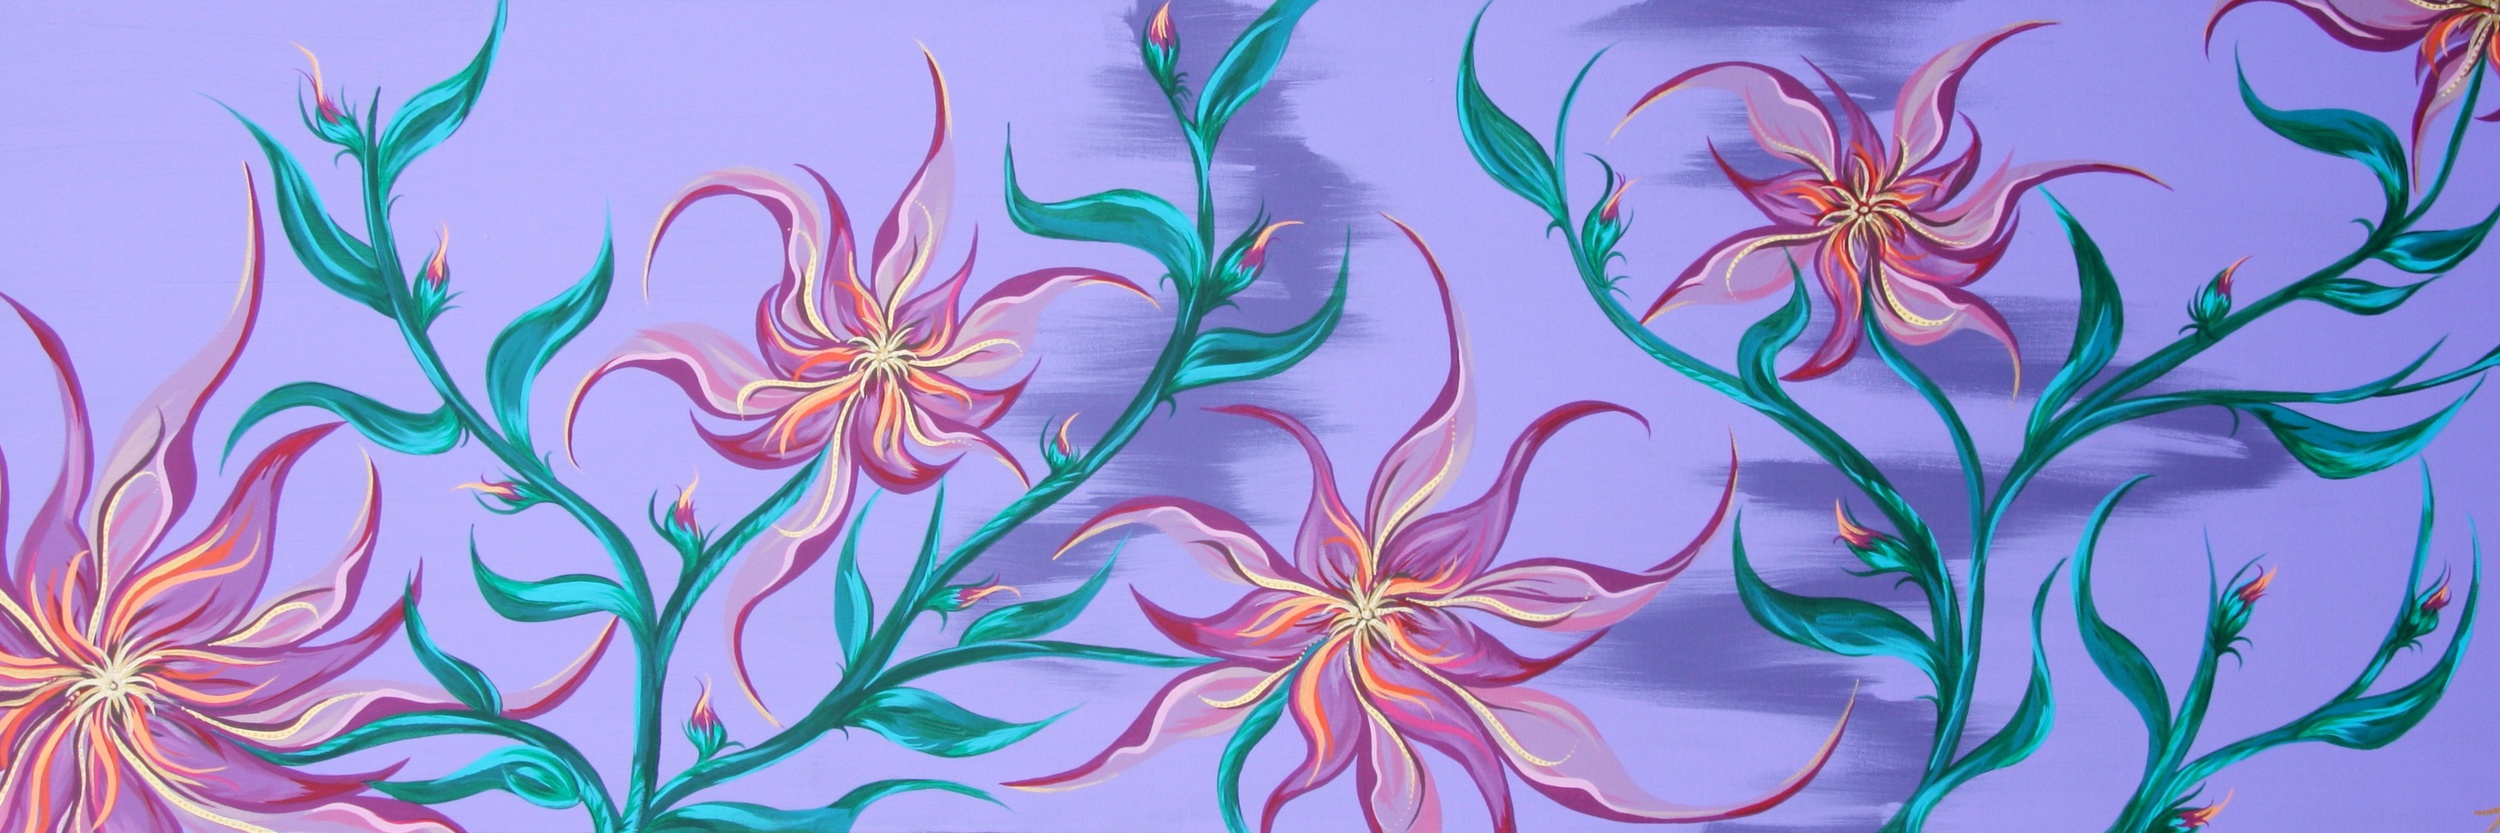 Just Flowers Painting